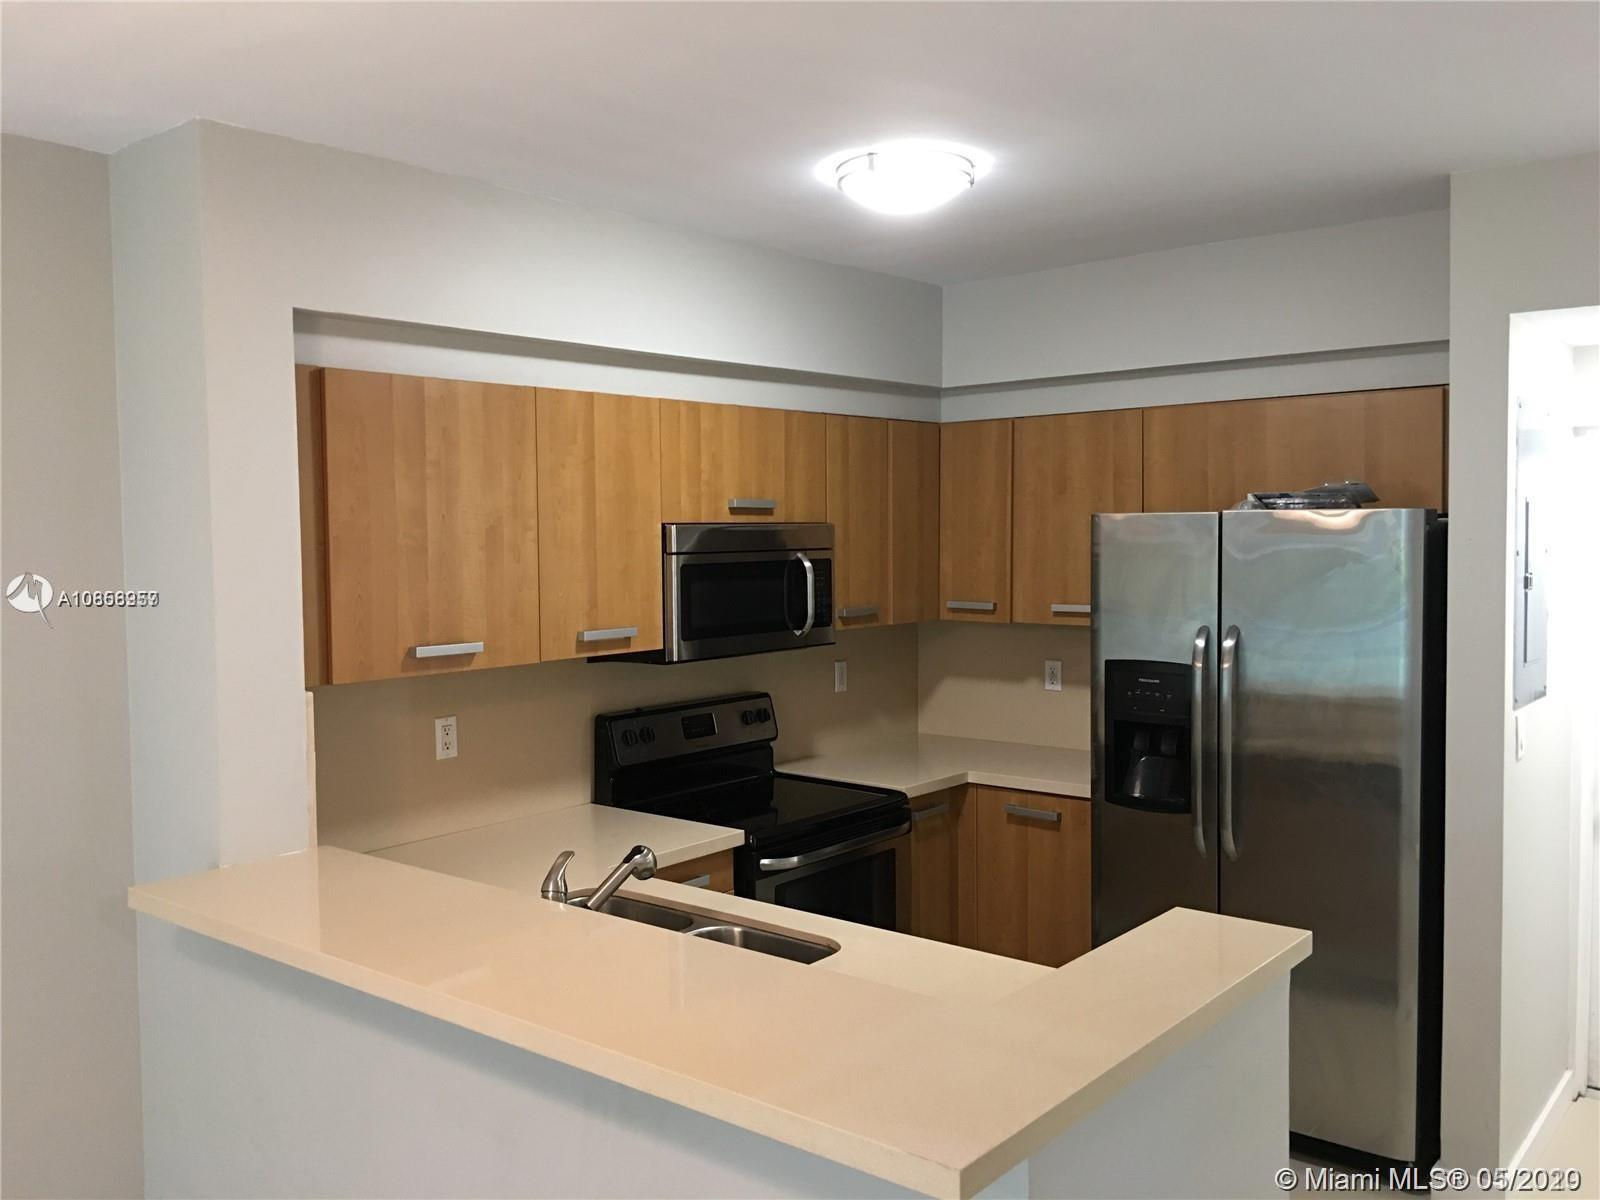 2 Bedroom / 1 Bath in boutique building Bahia Biscayne. Conveniently located on Biscayne Corridor an